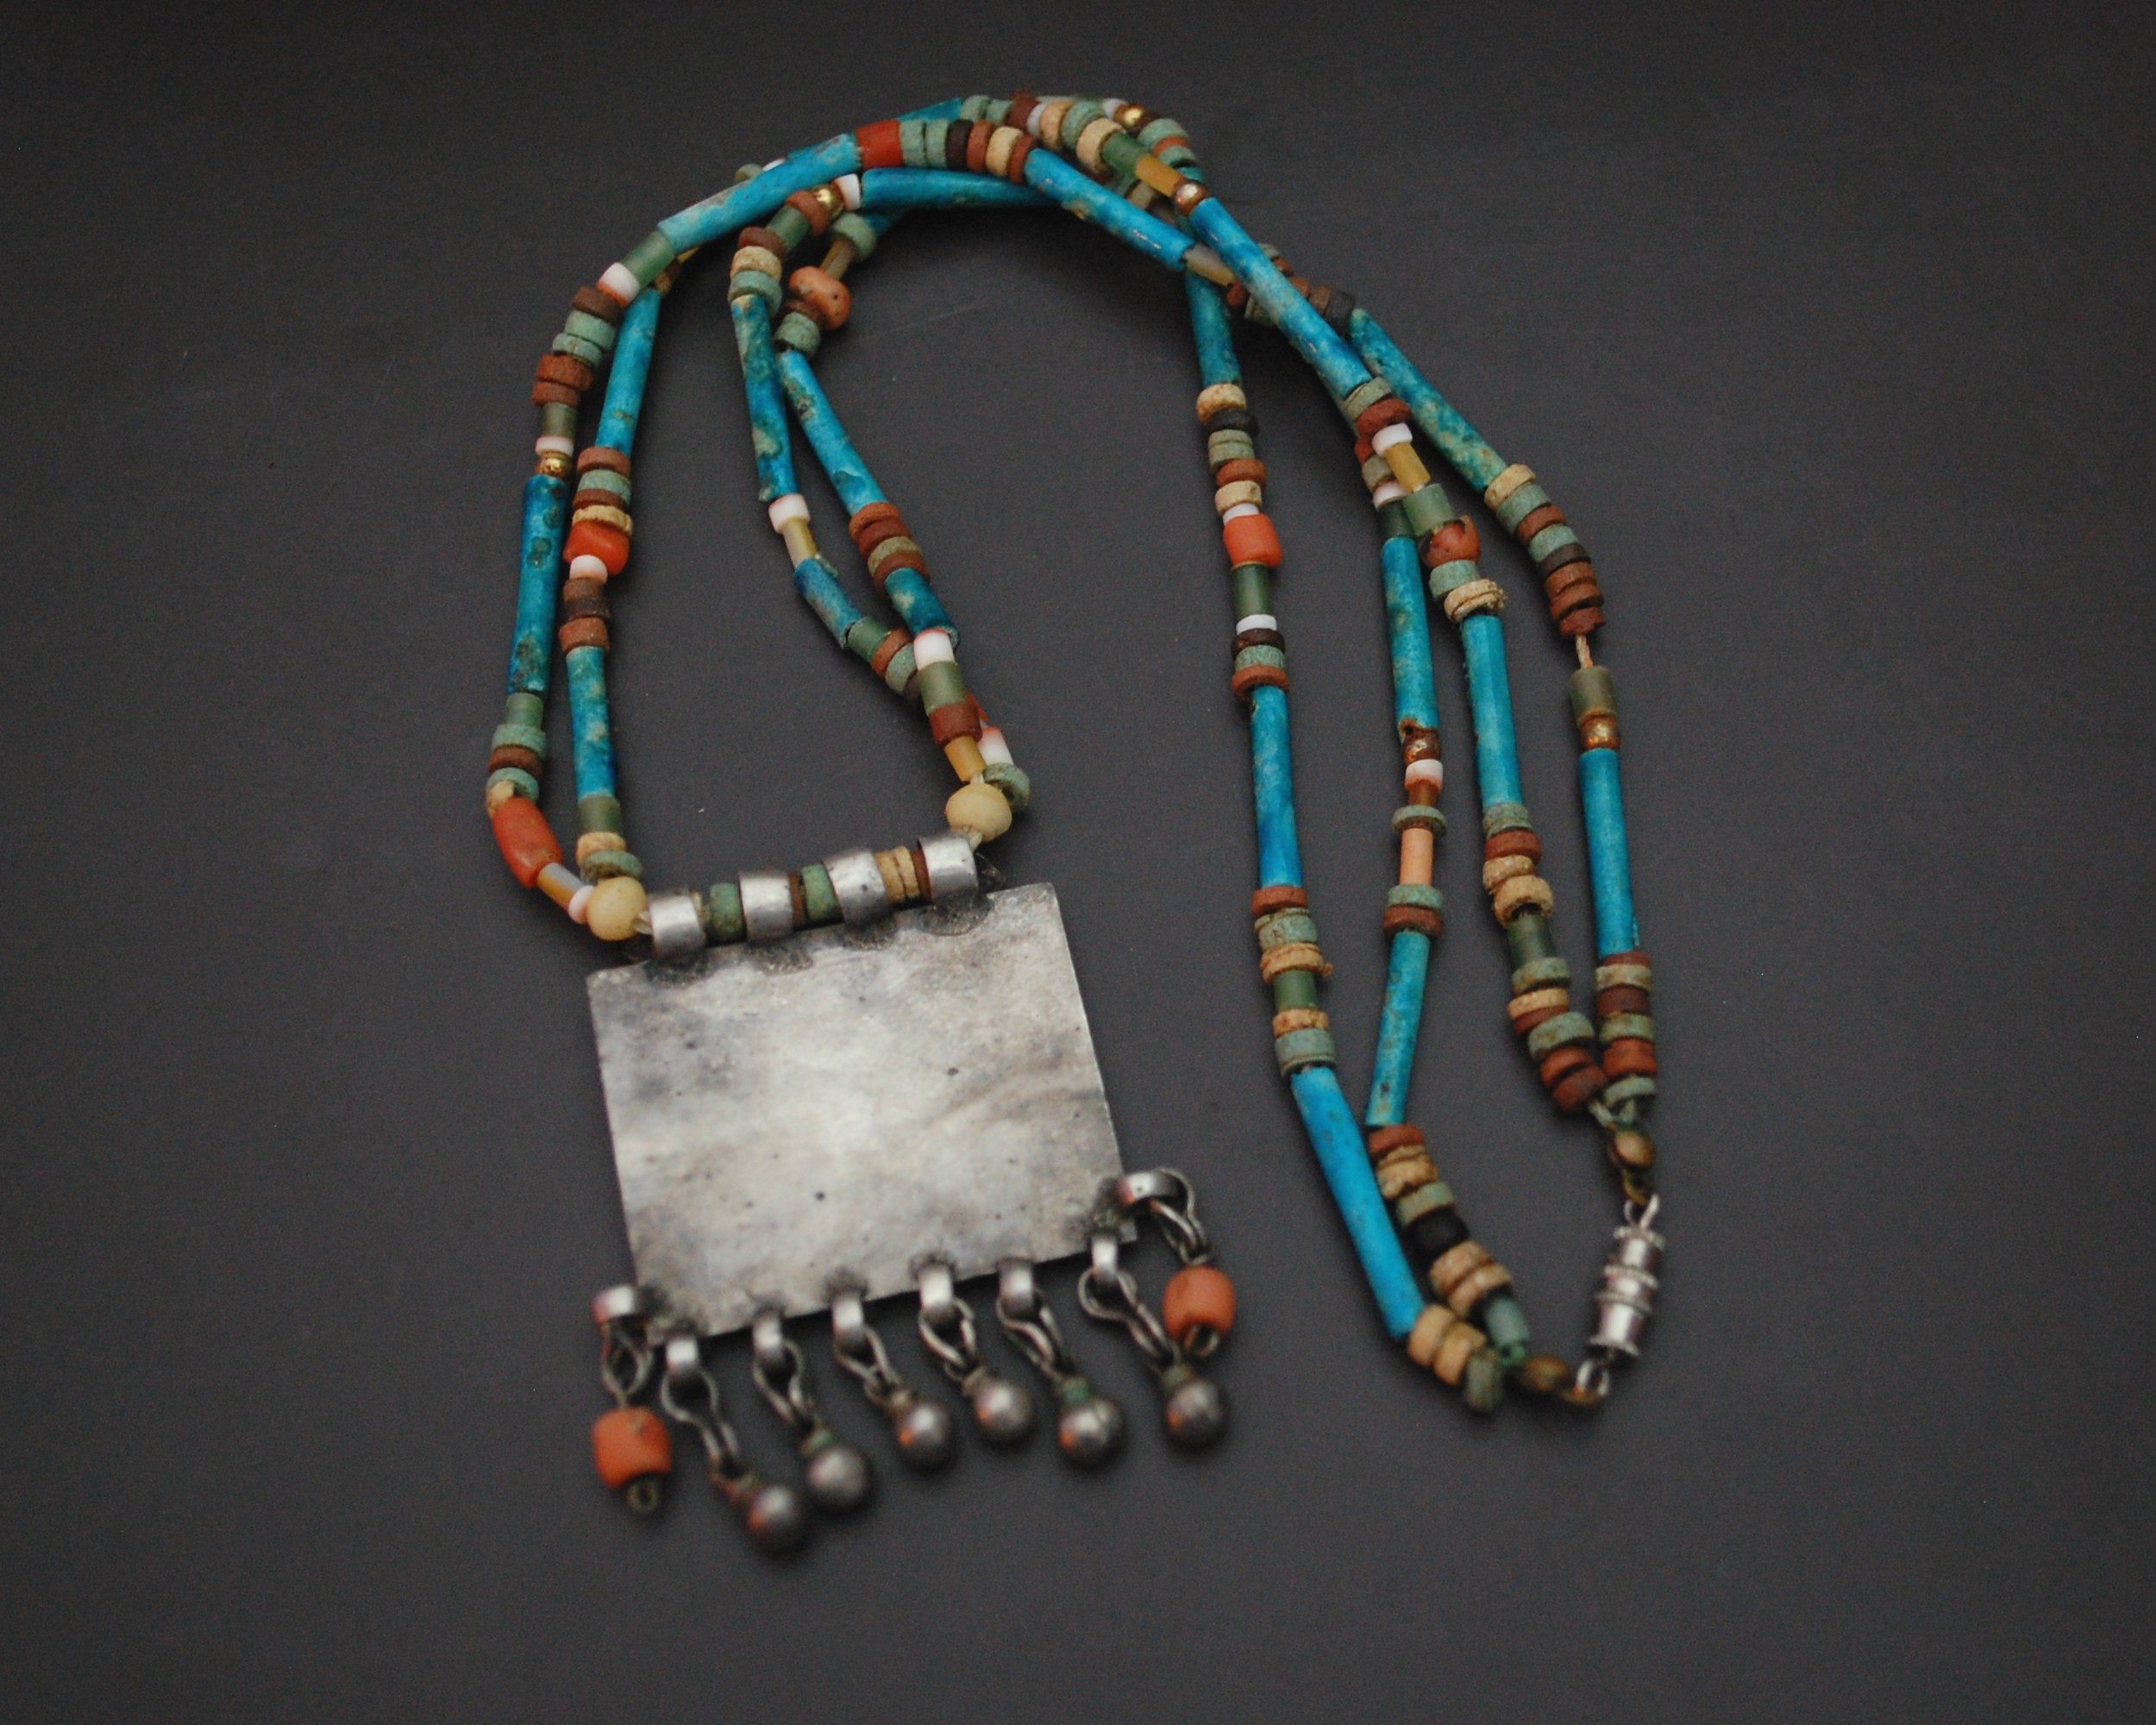 Antique Afghani Pendant and Faience Beads Necklace